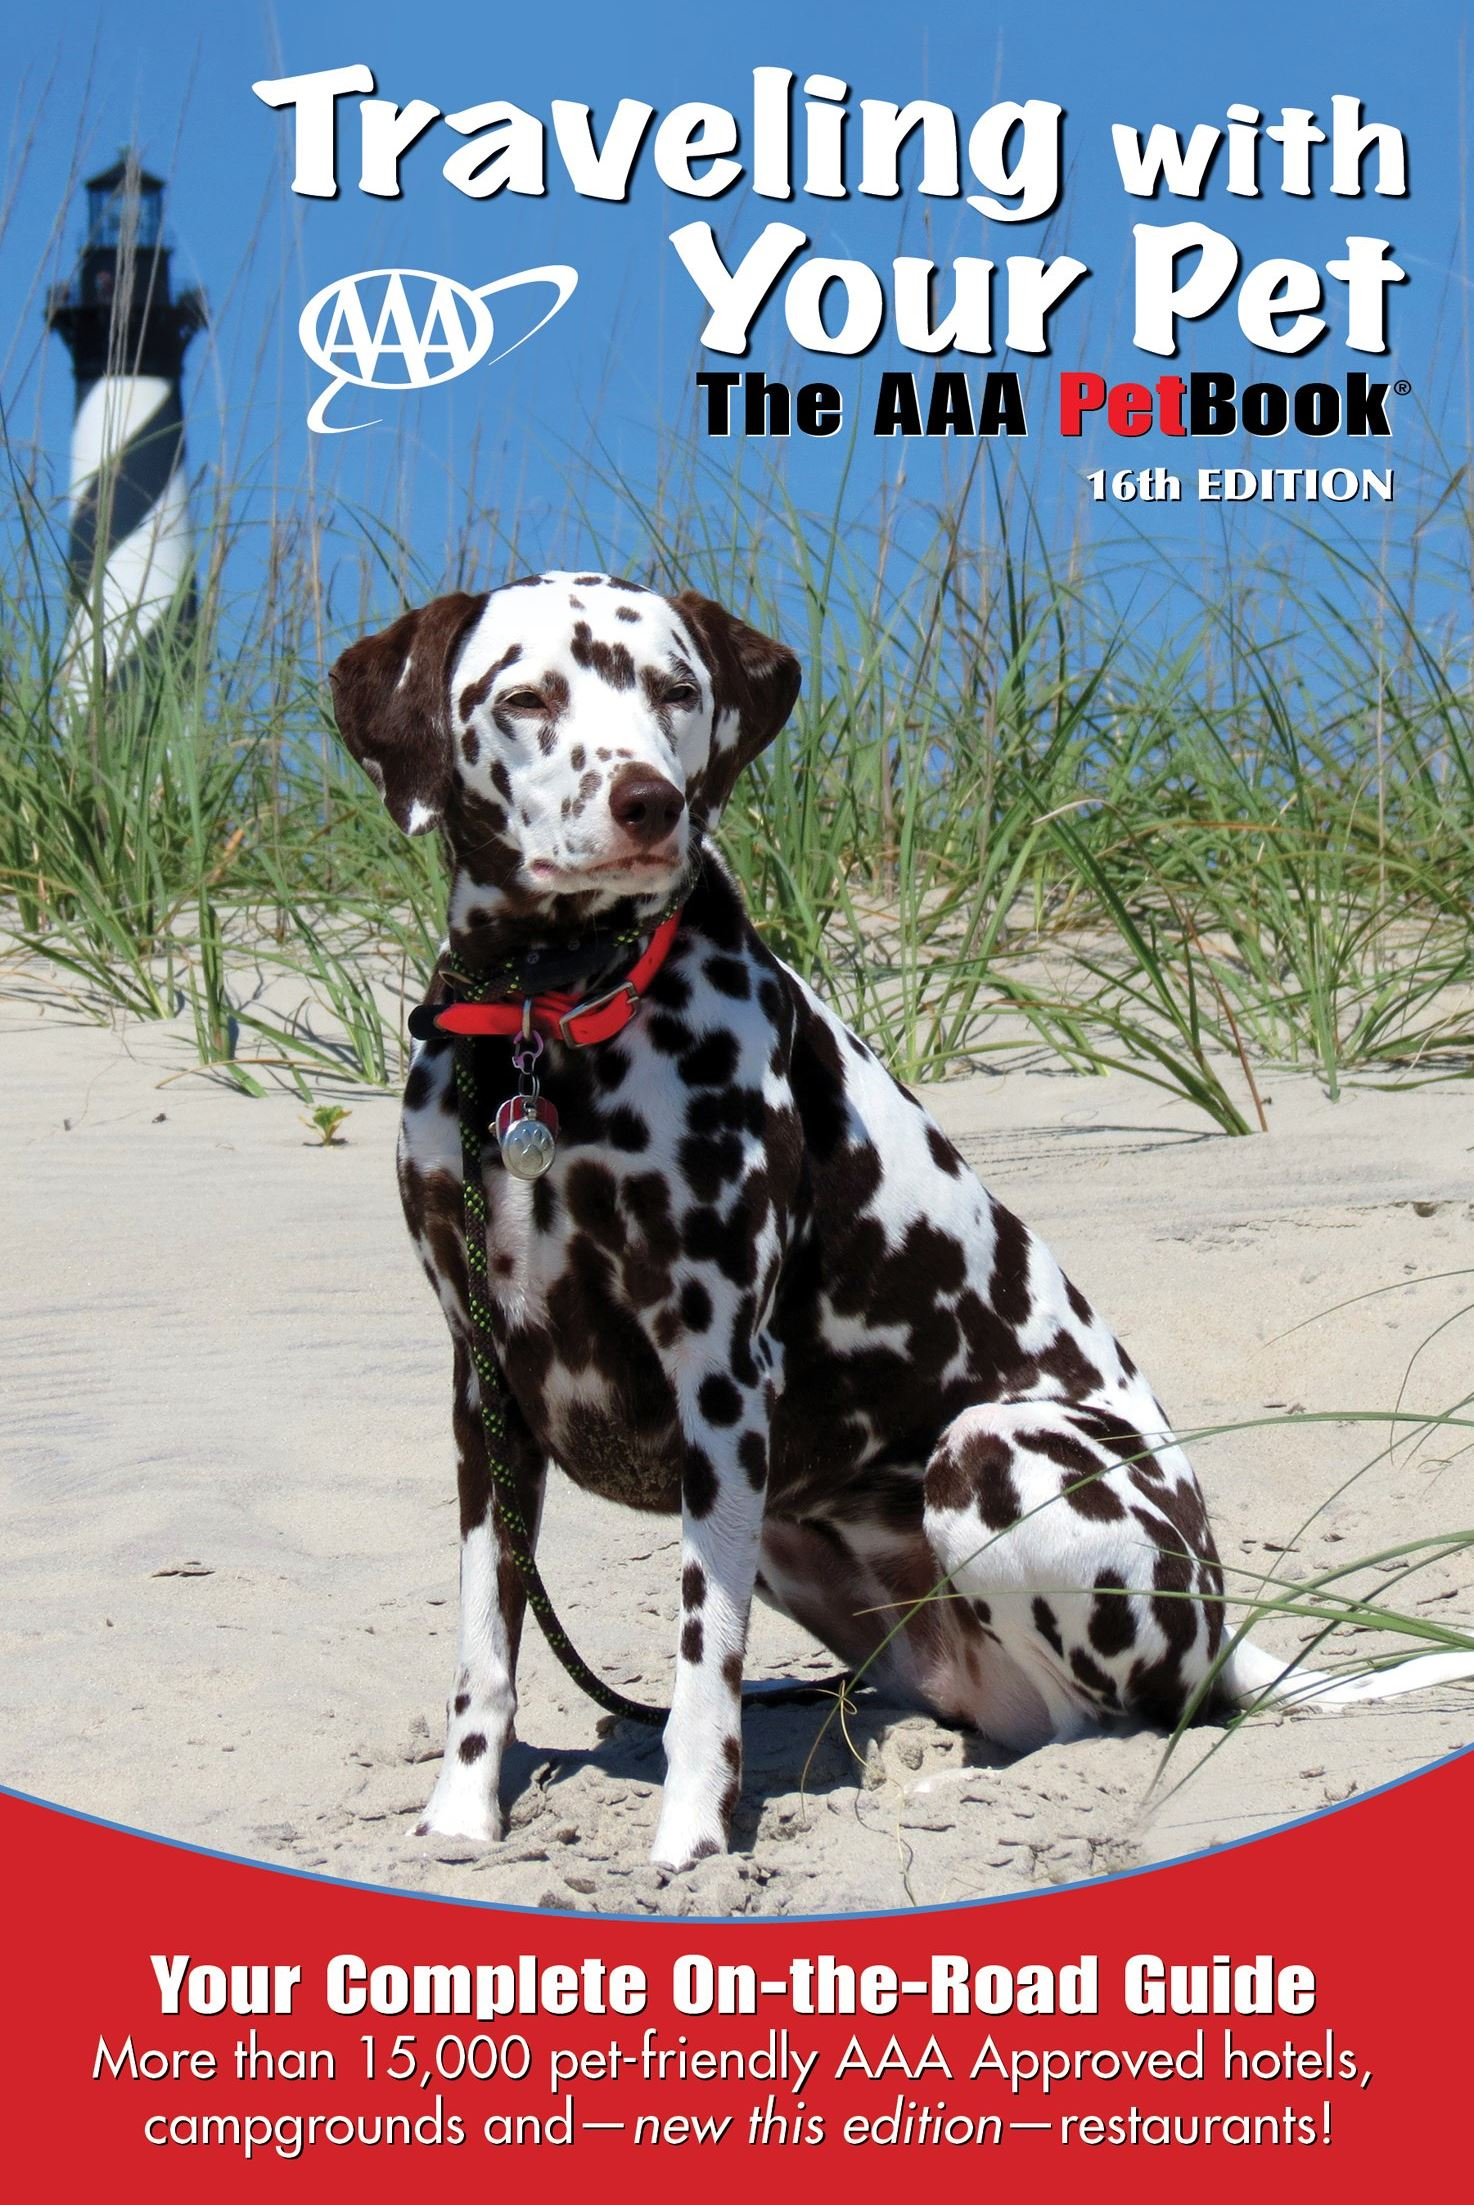 20140421AAApetguide Jazz, a Dalmatian owned Jim and Lisa Ann Bauer of Hampton, won a national contest to grace the cover of the AAA pet friendly travel guide.